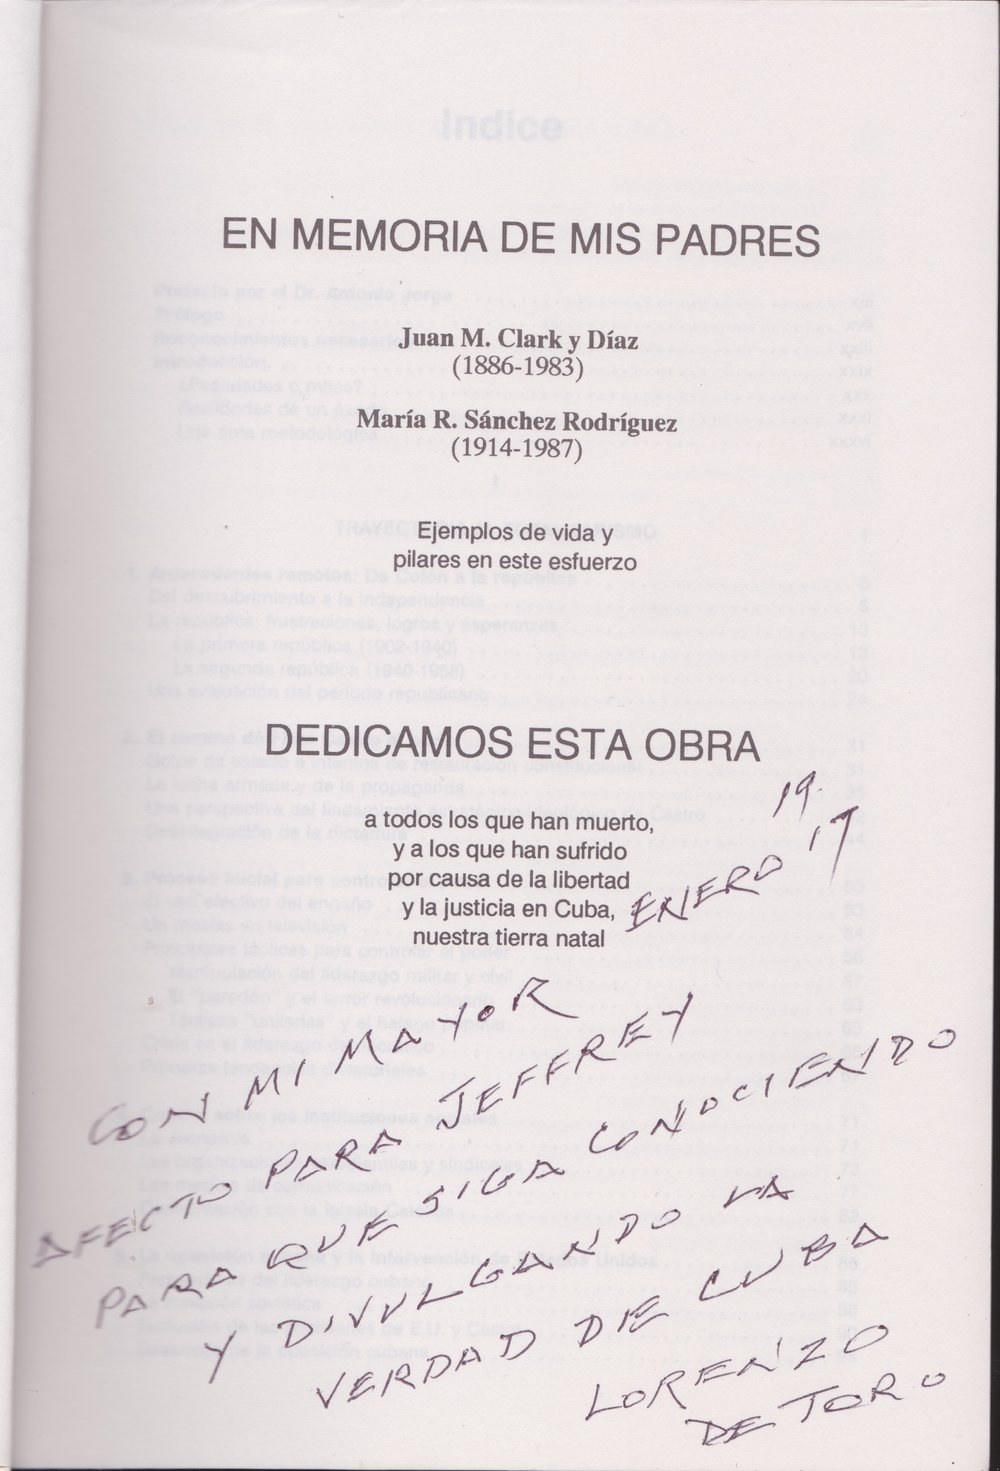 LIBRO DEDICATORIA.jpeg